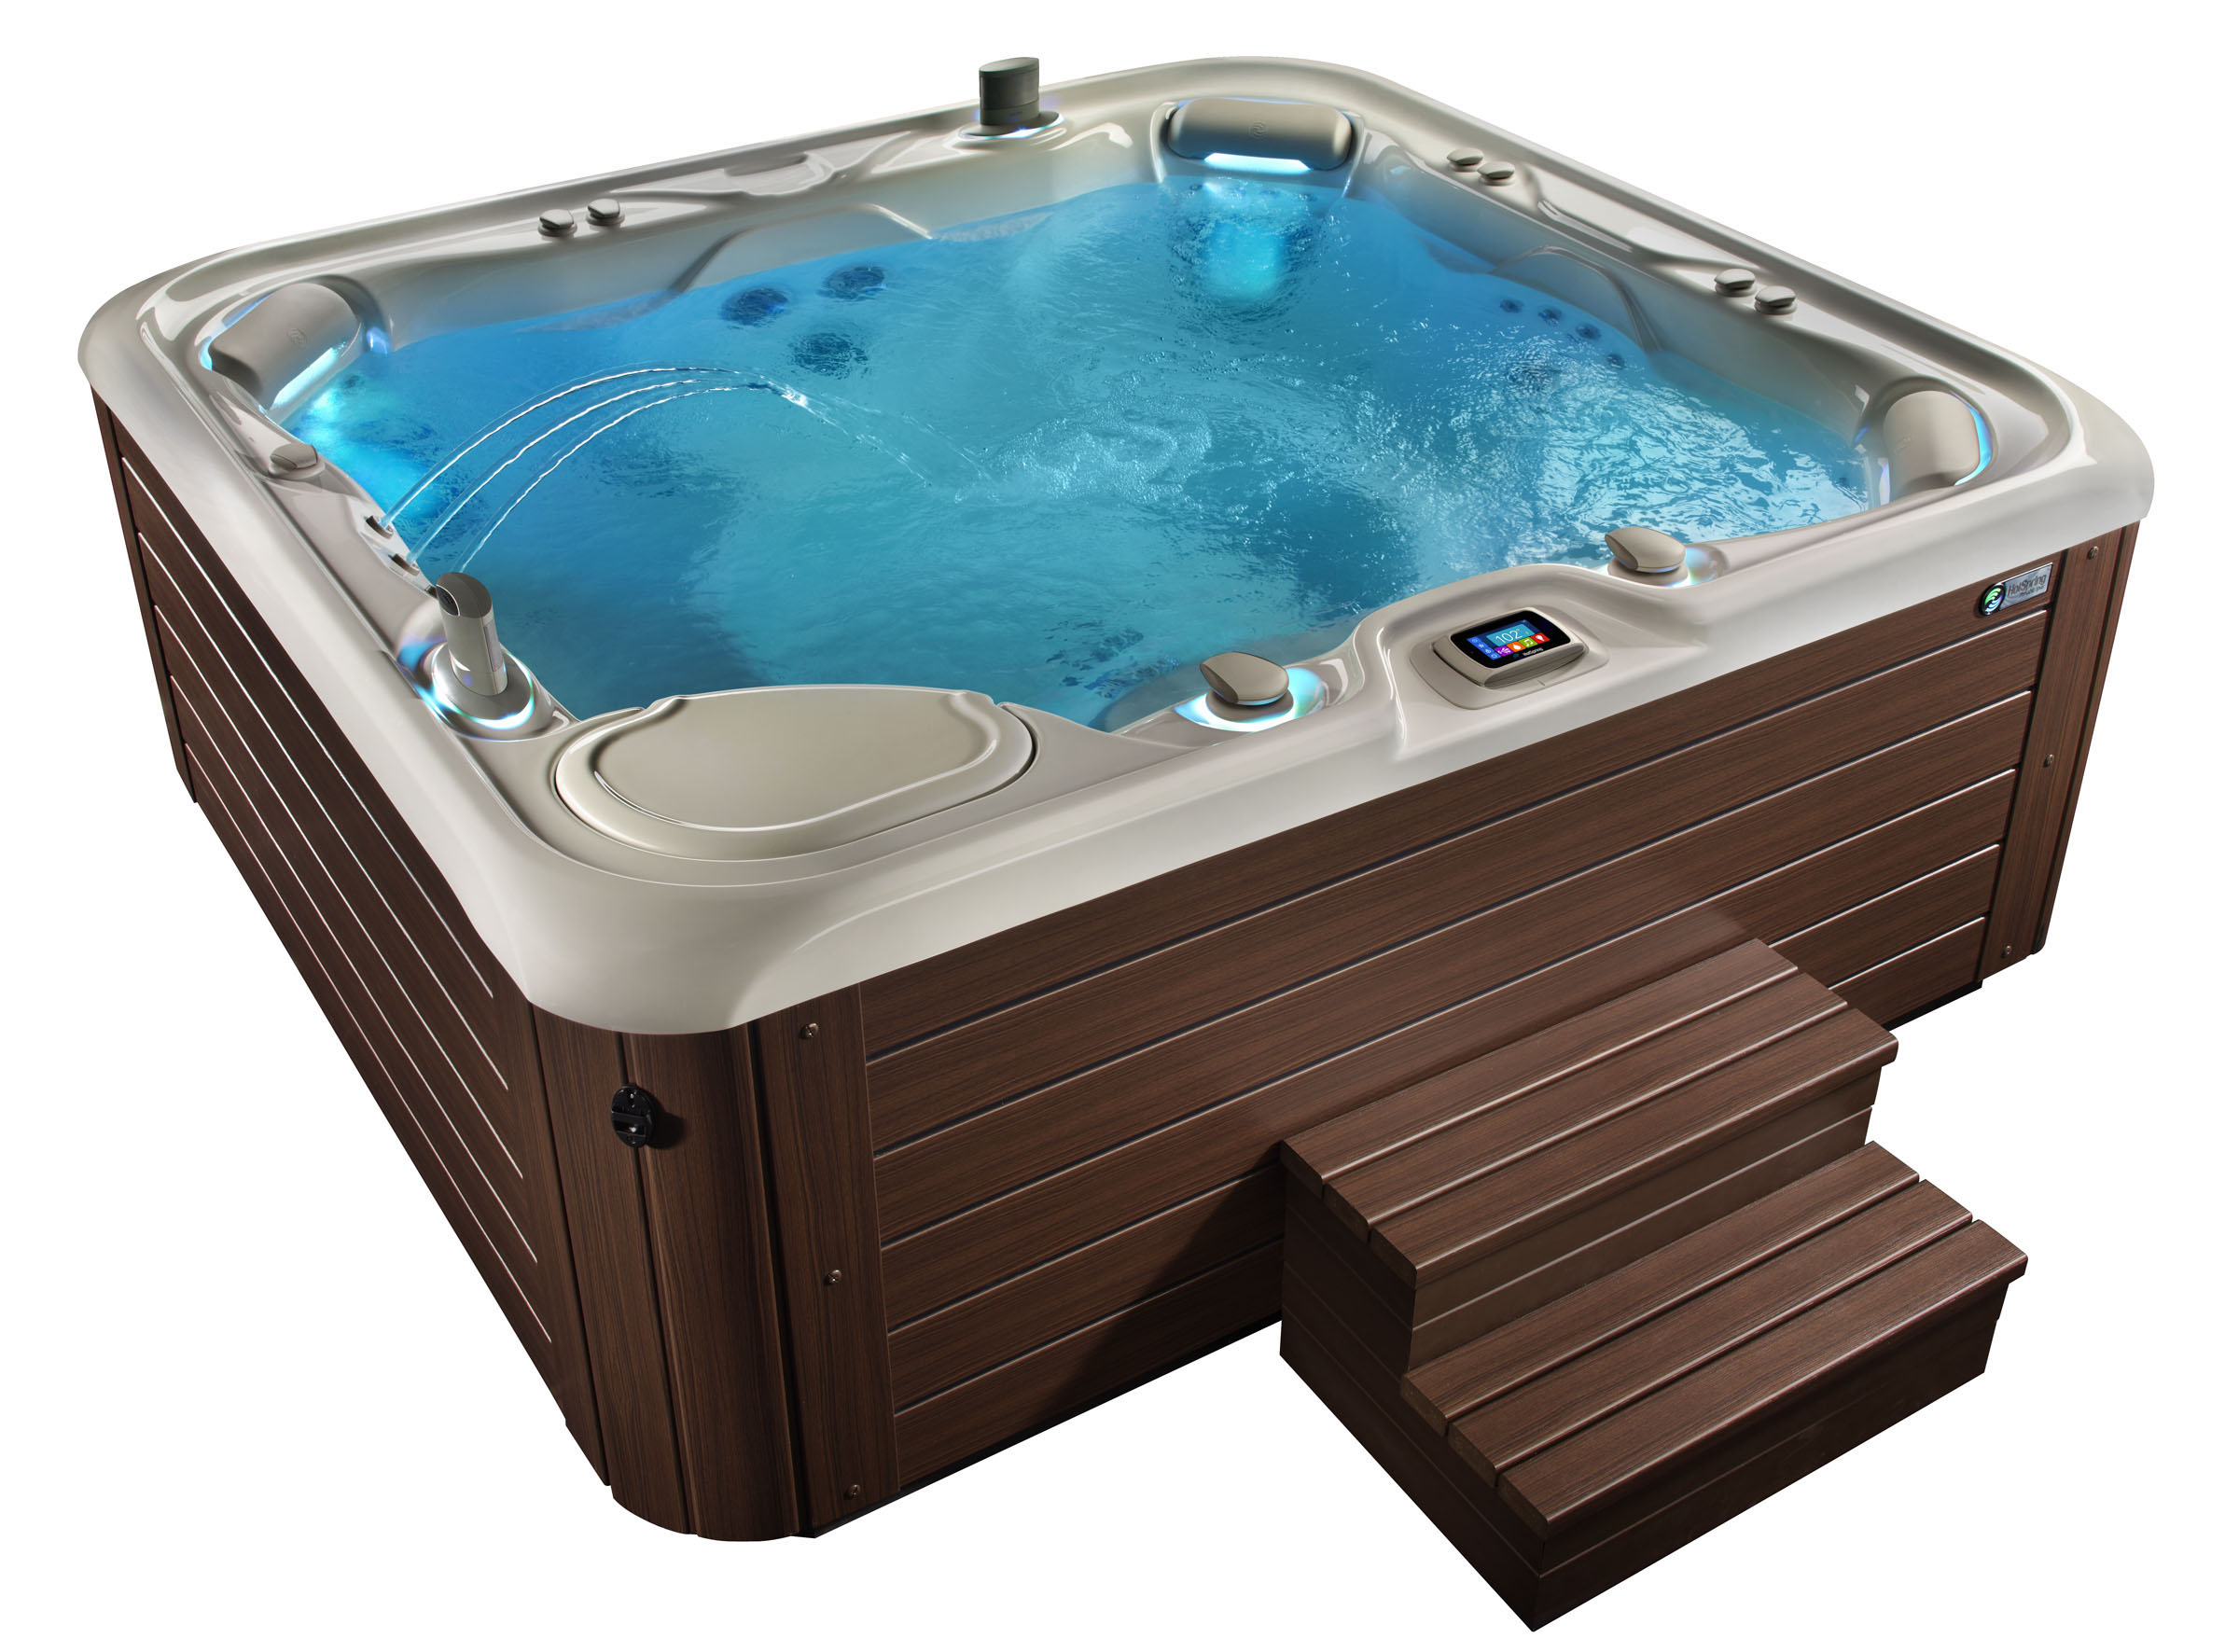 Three Things to Consider Before Buying a Hot Tub